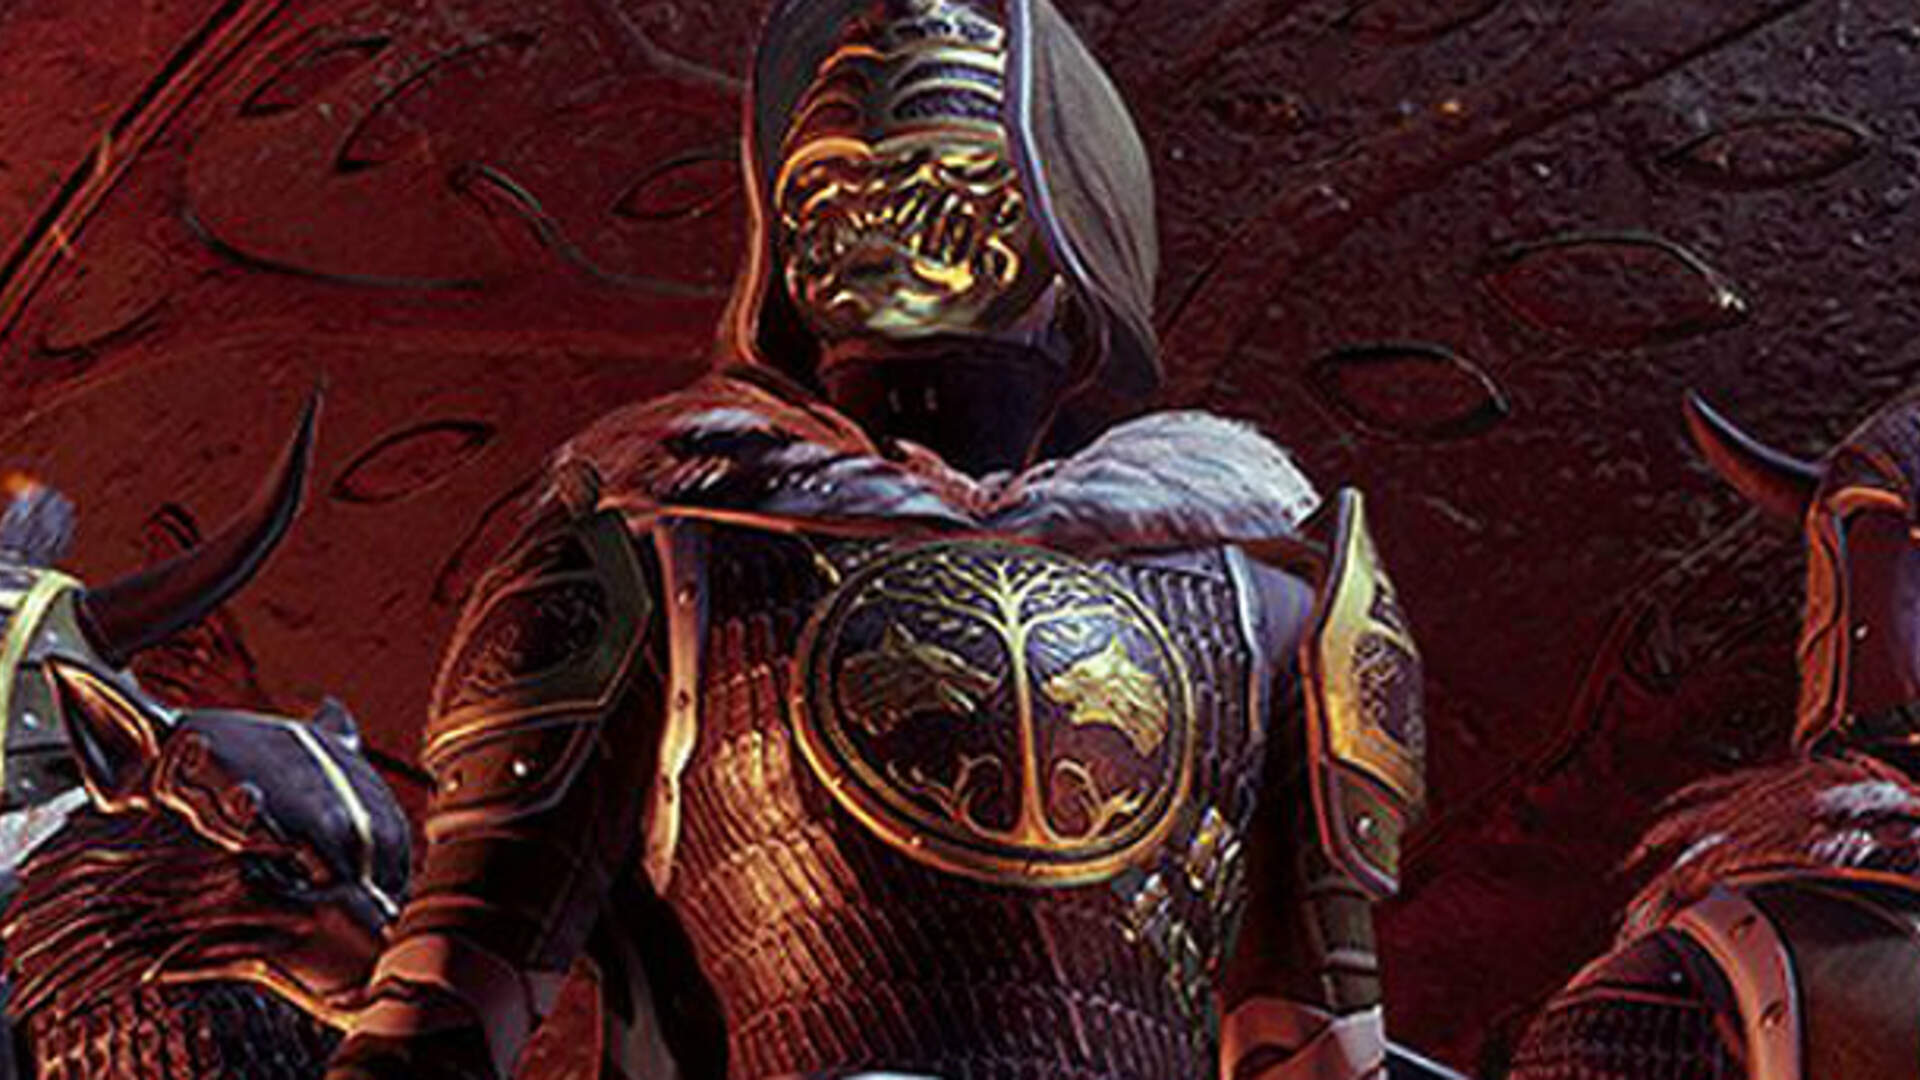 Destiny 2 Hotfix Re-opens Events For Those Without Curse of Osiris